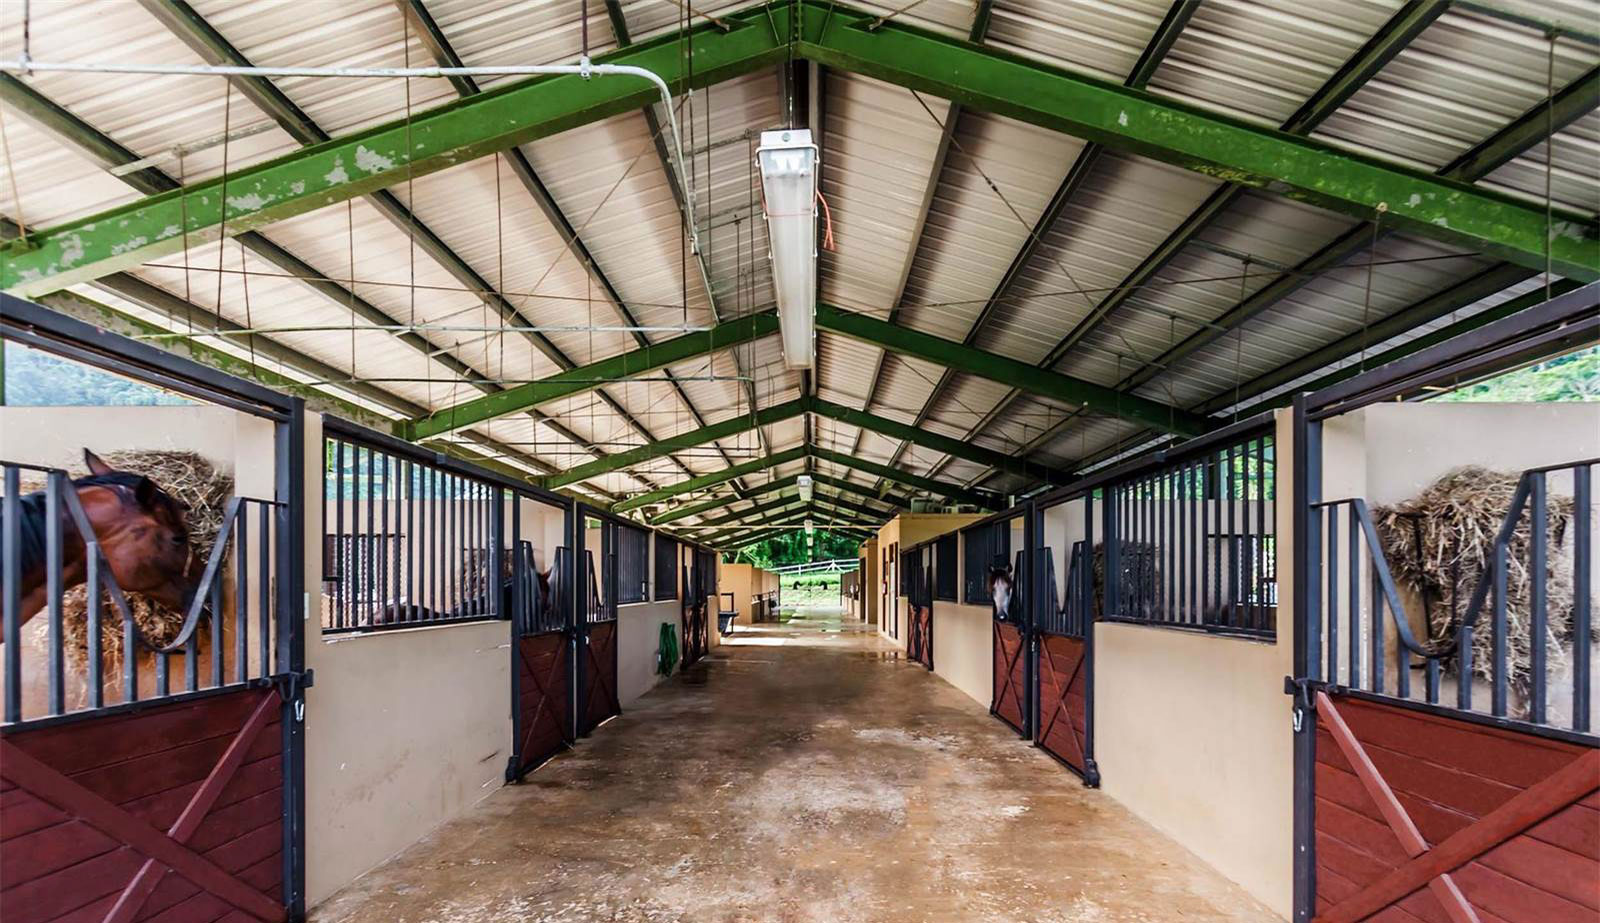 Animal lovers will feel right at home at this 191-acre ranch and farming estate set within the lush landscape of Morovis in the Puerto Rican green belt.